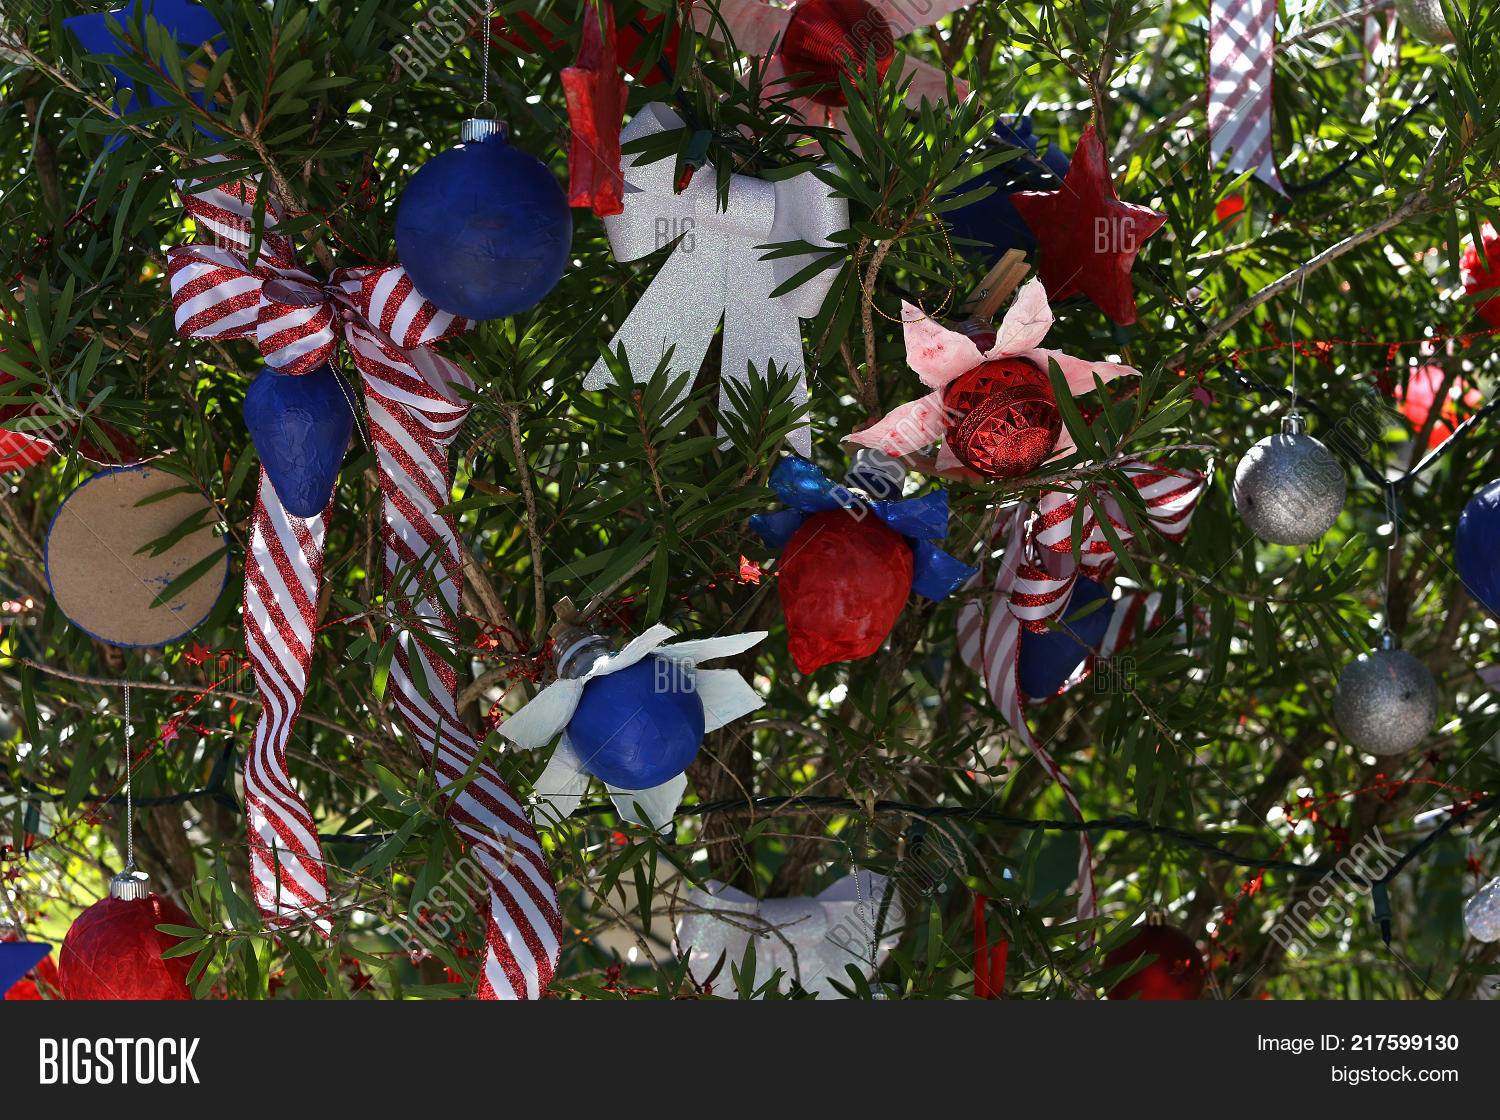 Patriotic Christmas Lights.Patriotic Christmas Image Photo Free Trial Bigstock